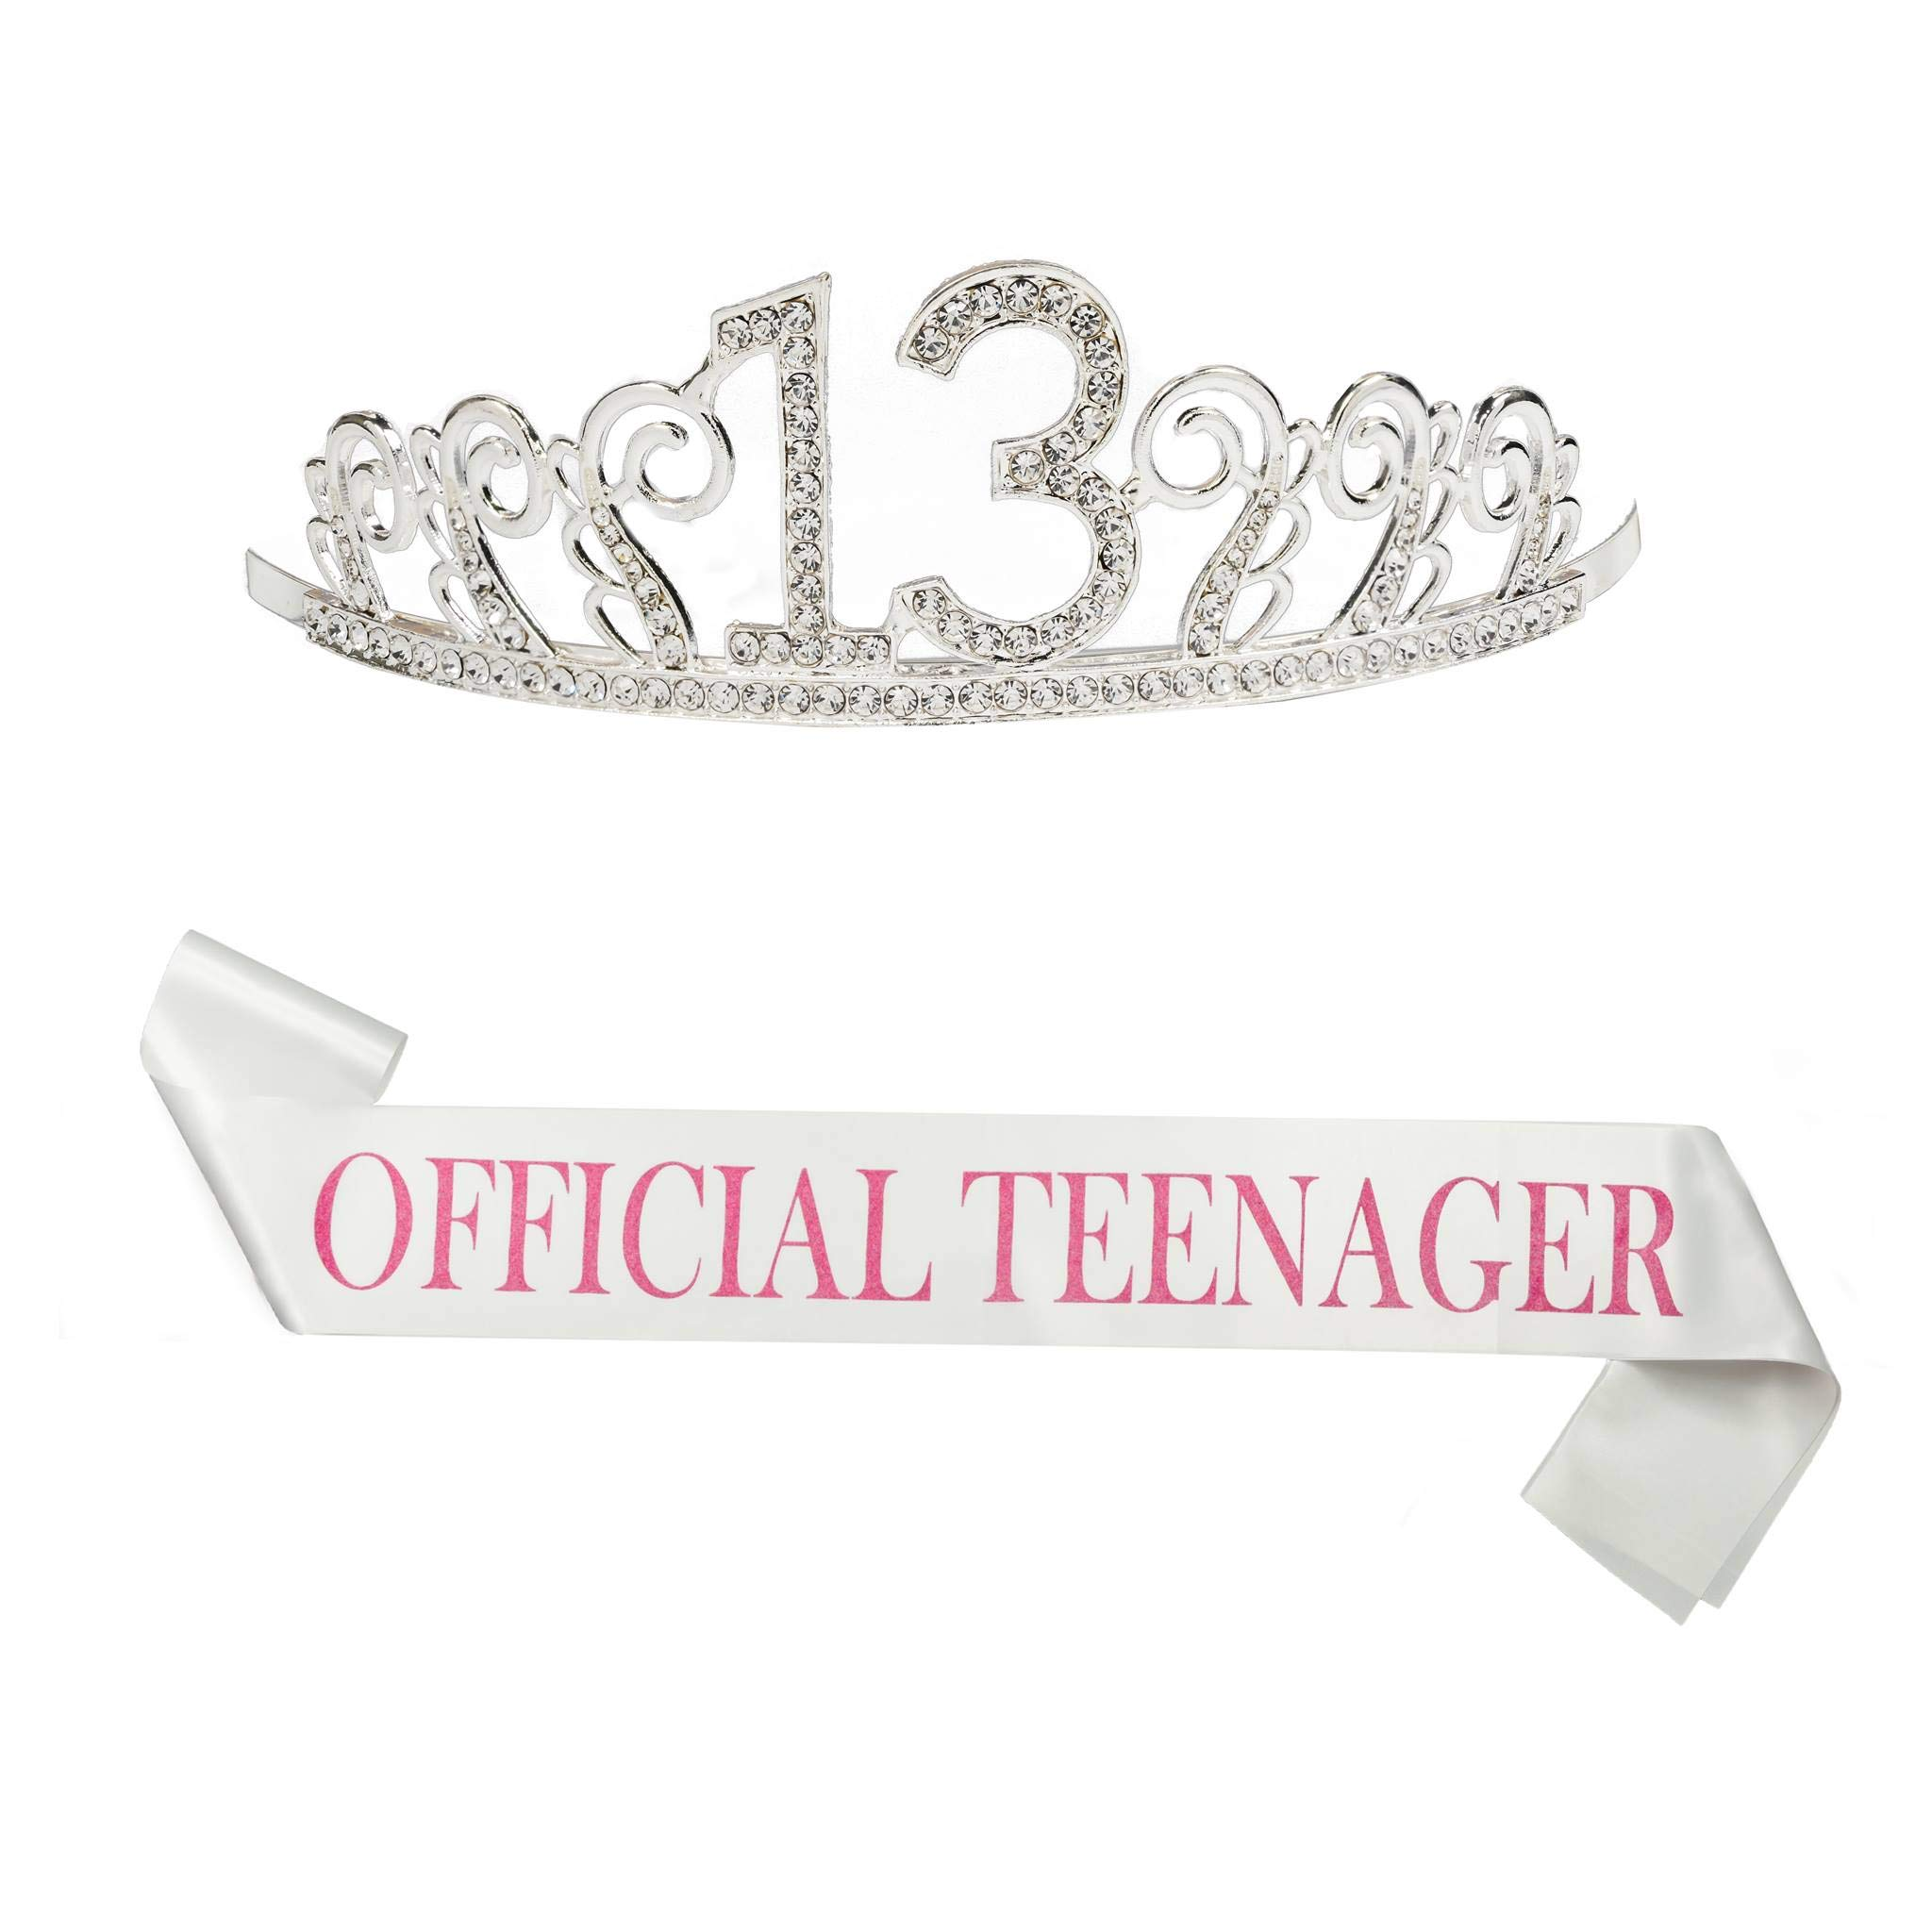 B4MBOO 13th Birthday Crown and Sash, Glitter 13 Crown With A 25 inch ''Official Teengager'' Pink Sash, Beautiful Tiara and Sash Set For 13th Birthday Party. Perfect Gift Birthday Party Supplies